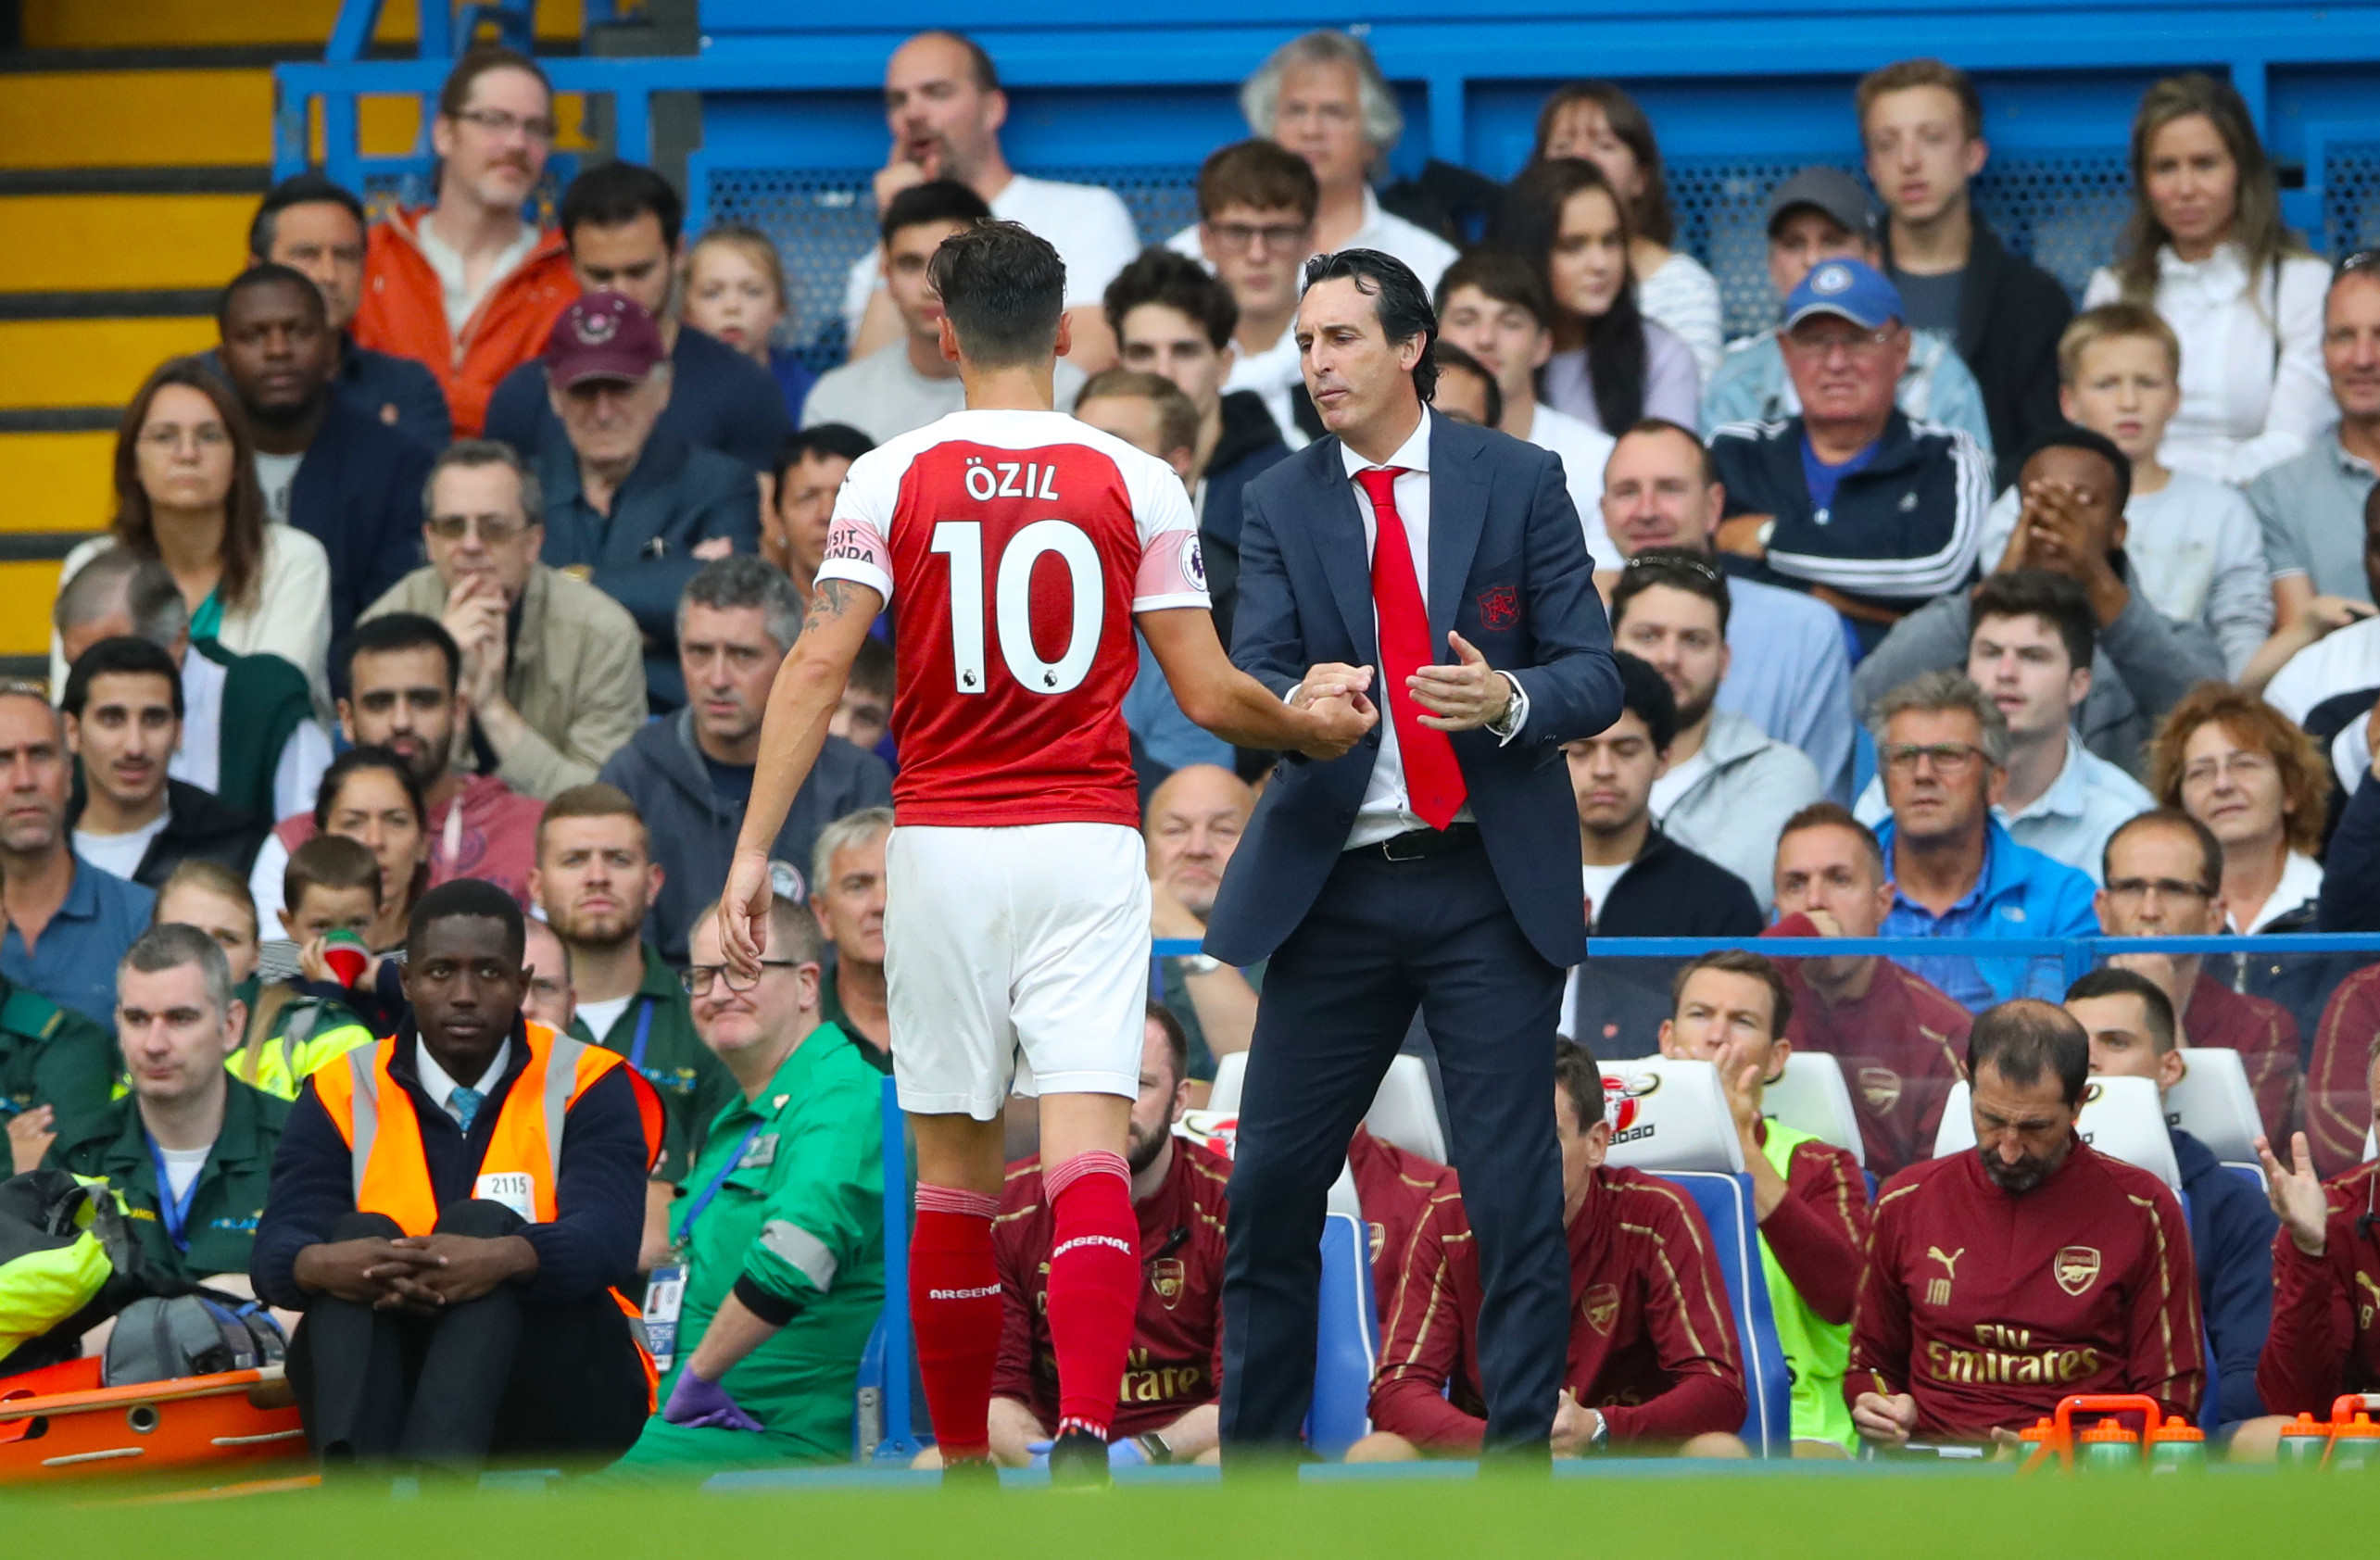 Bayern boss declares Ozil unfit to be Arsenal captain